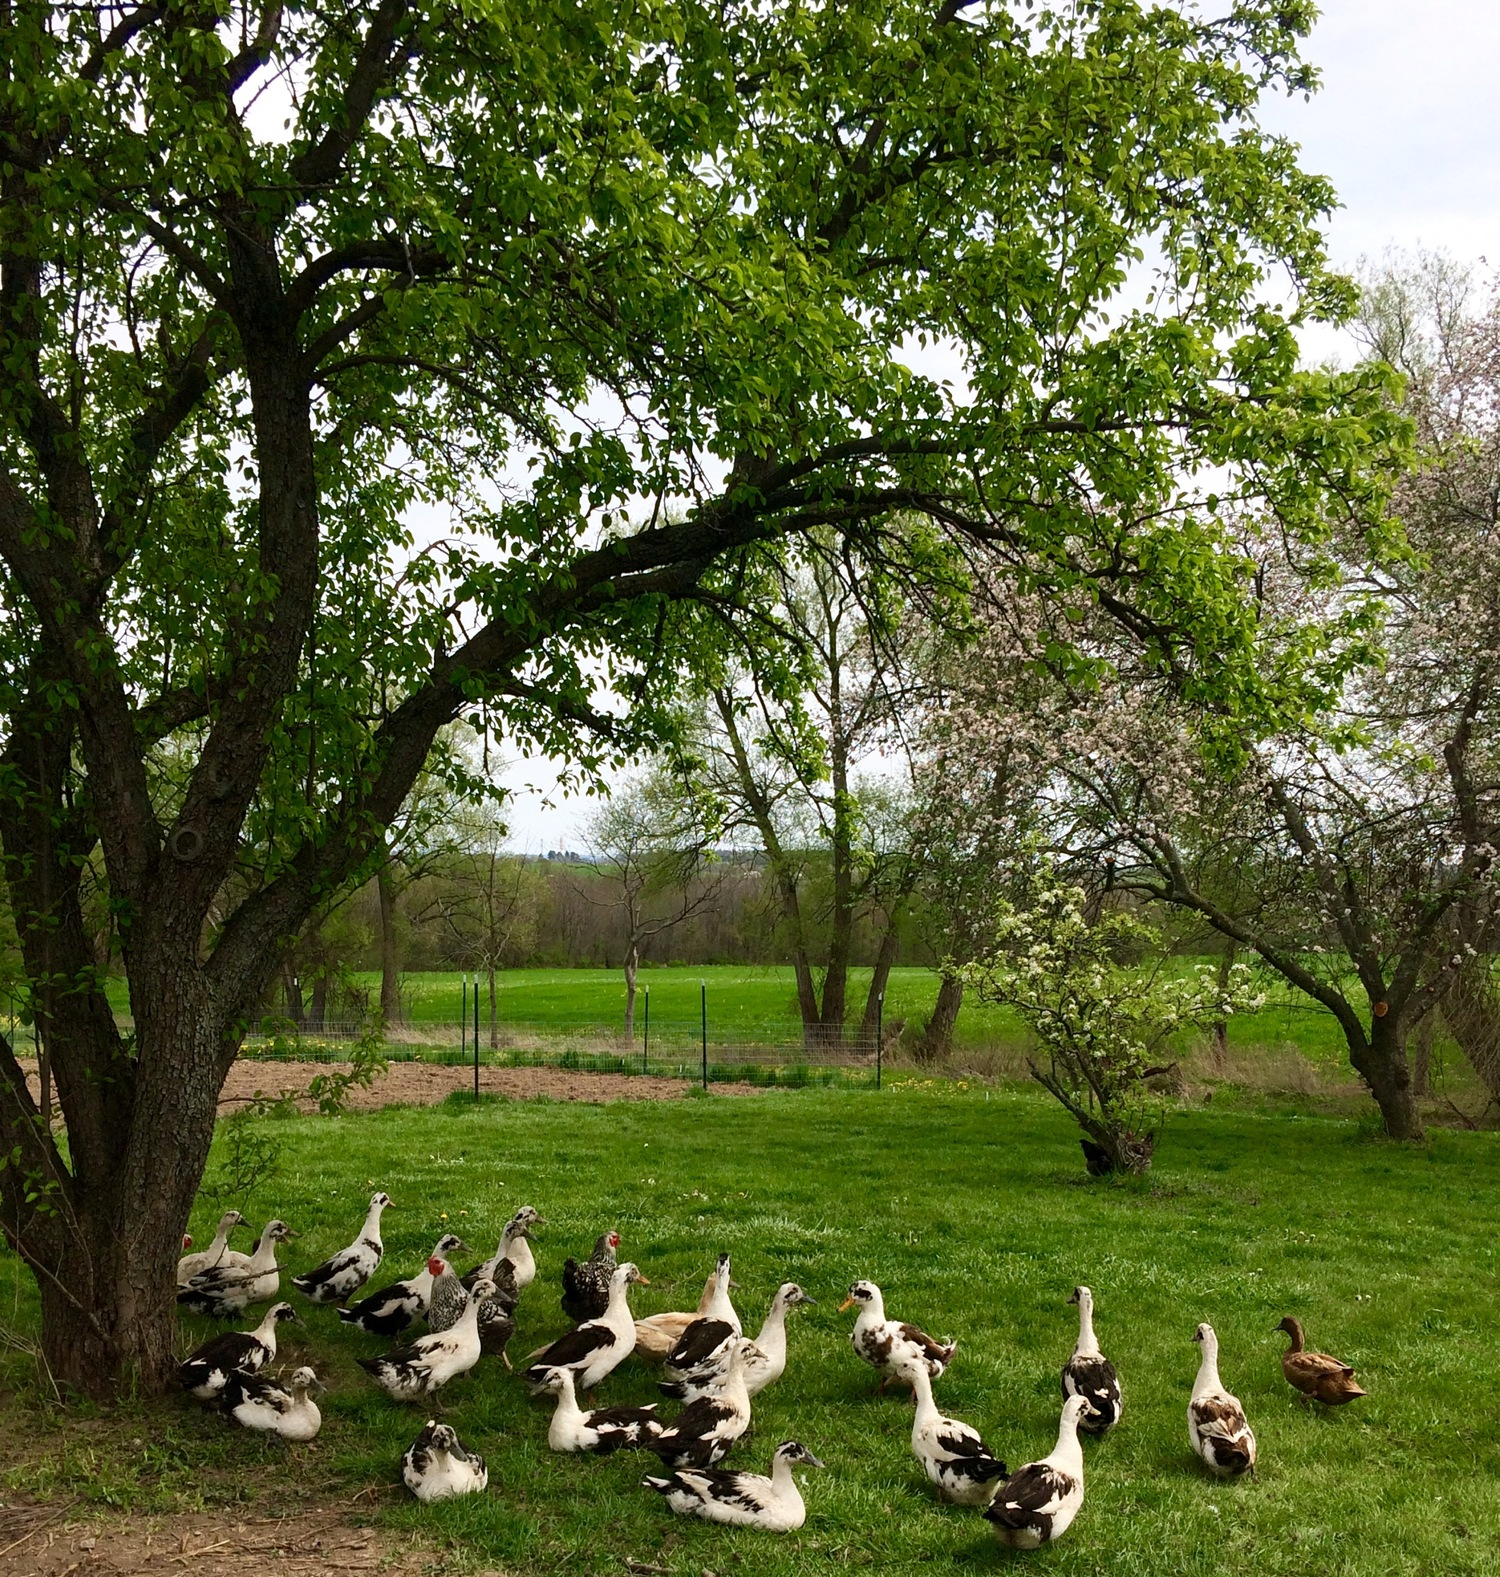 spotted duck creamery